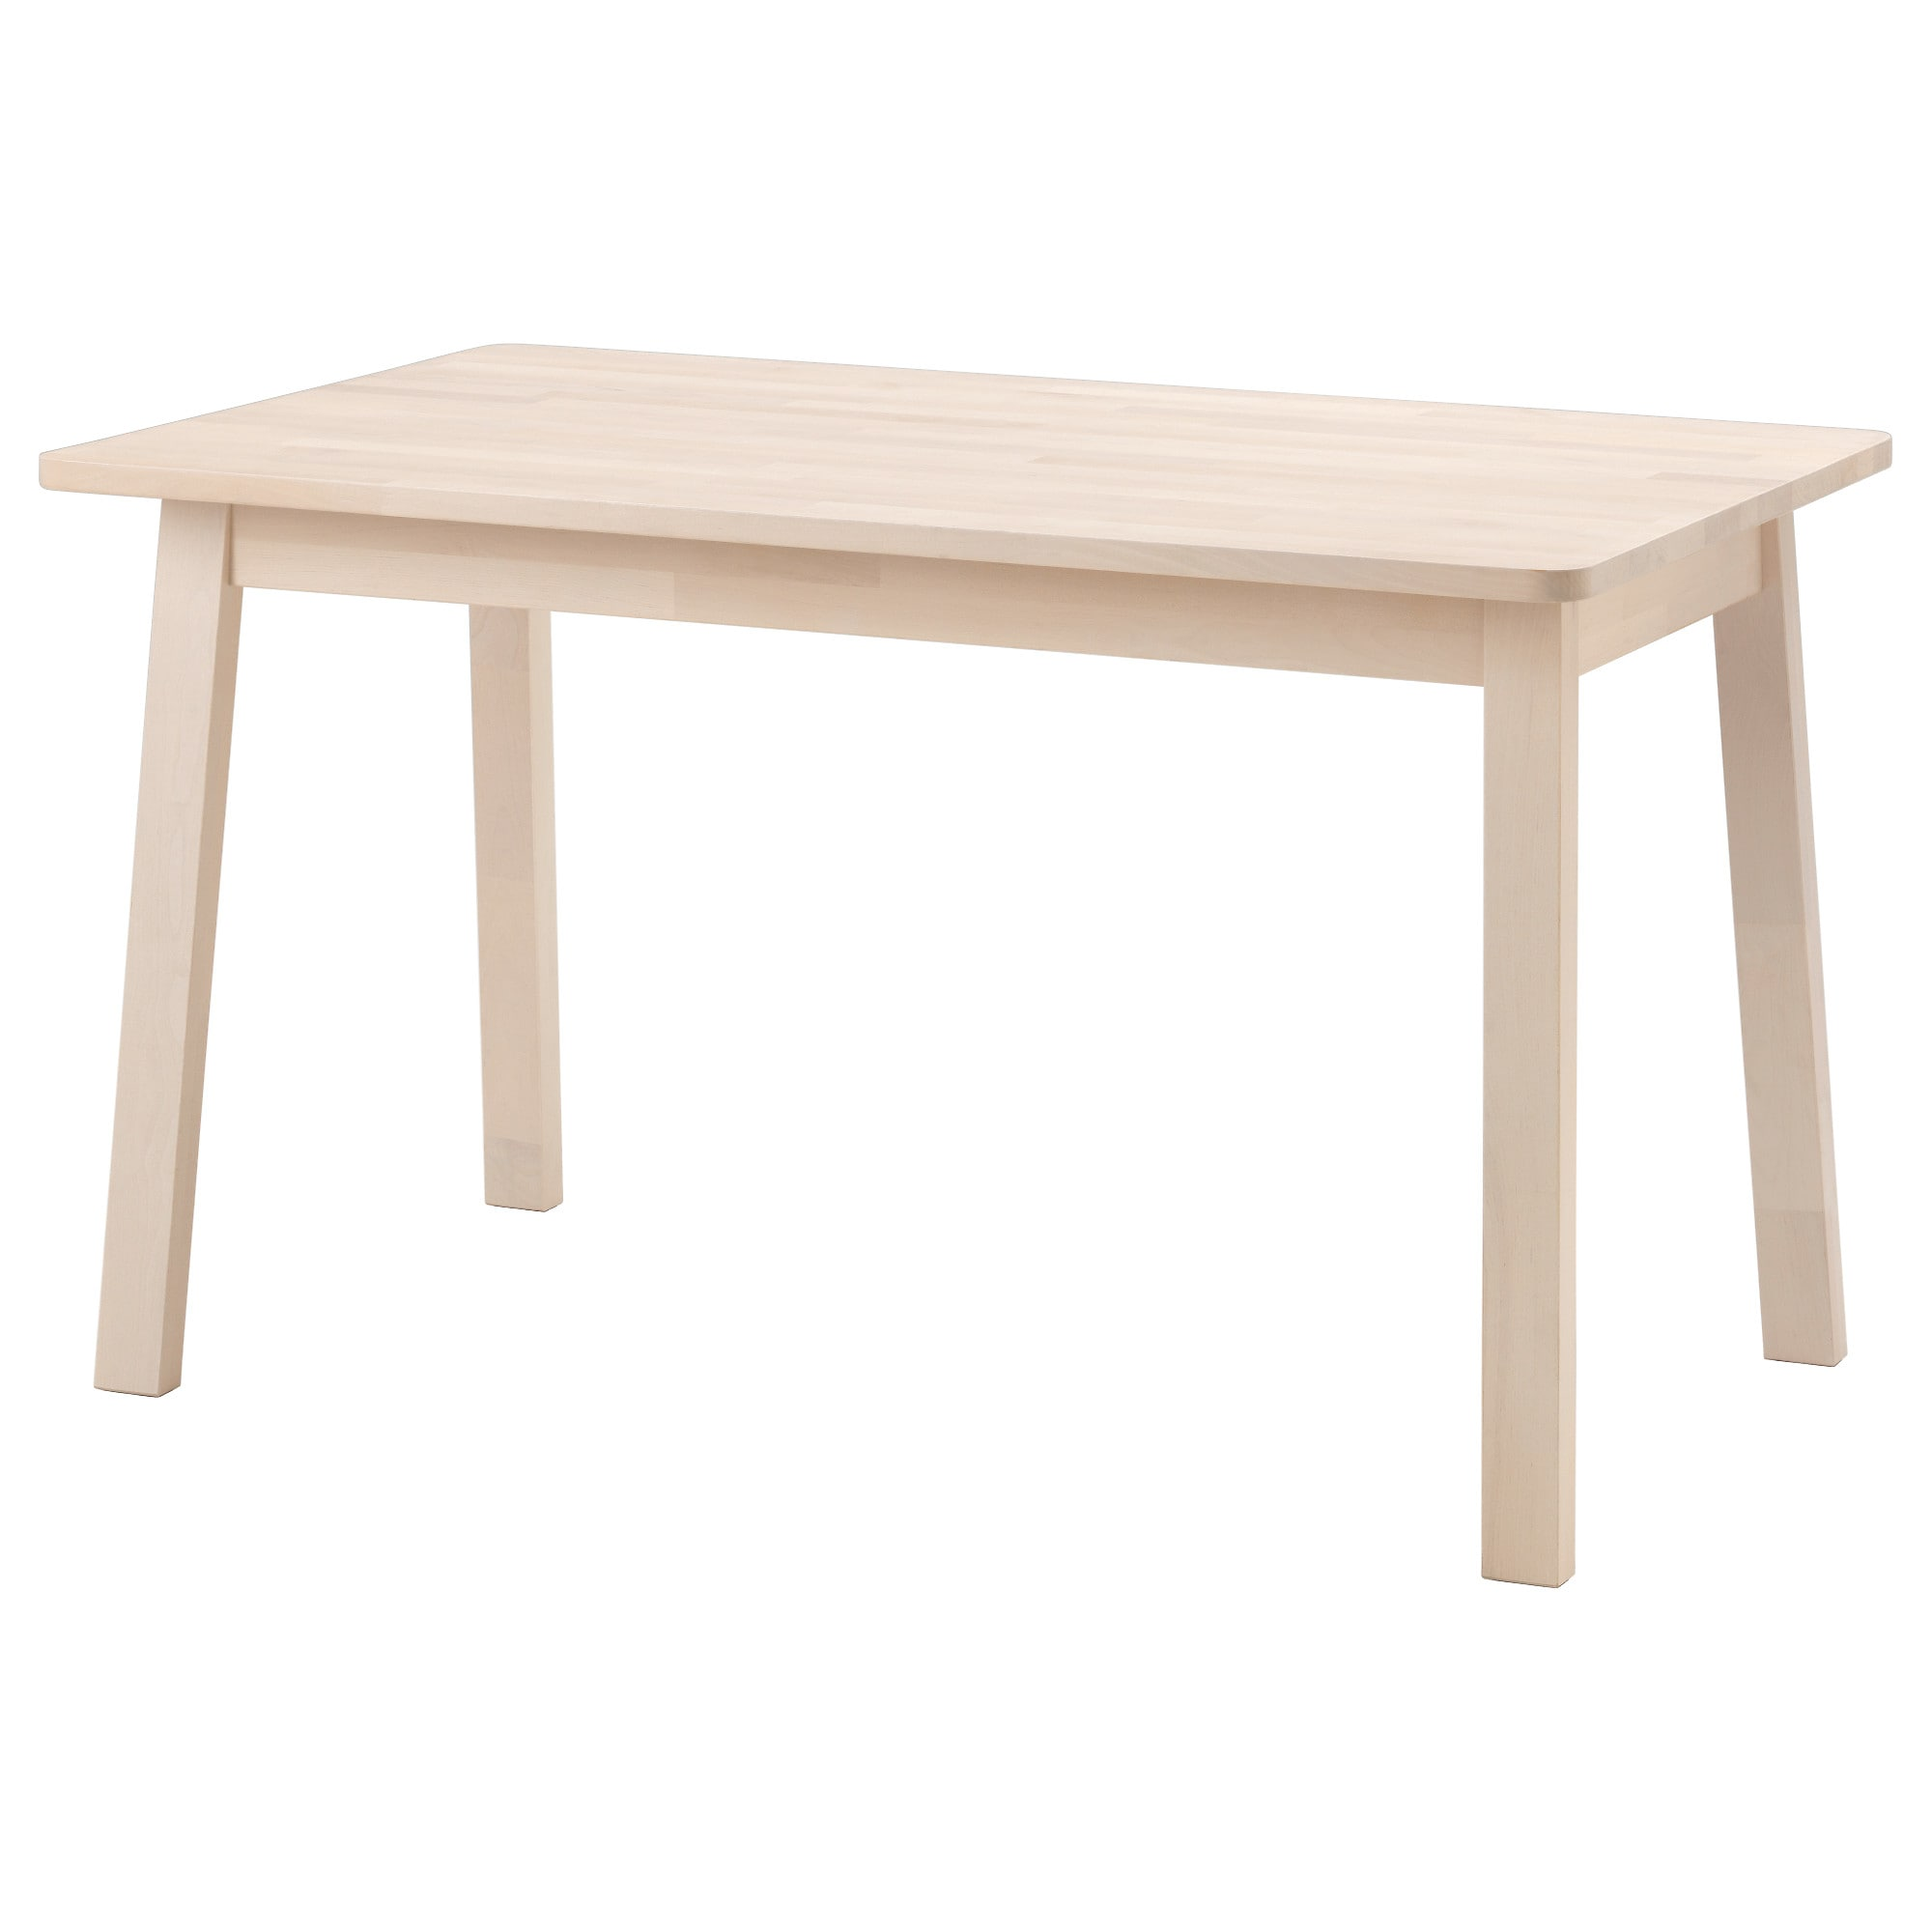 Norr ker table white birch whitepine space table ikea table bois mobilier de salon - Table de salon ikea ...